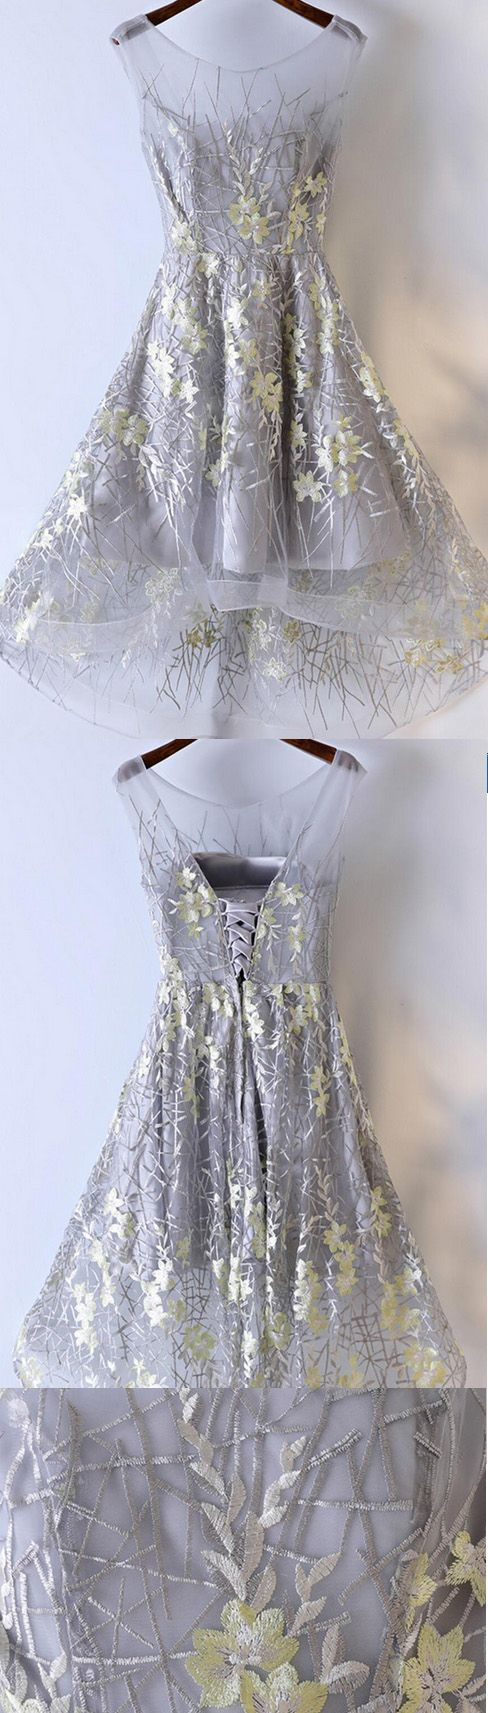 Short Prom Dresses, Lace Prom Dresses, Prom Dresses Short, Silver Prom Dresses, Prom Dresses On Sale, Homecoming Dresses Short, Prom Dresses Lace, Prom Short Dresses, Short Homecoming Dresses, Dresses On Sale, Lace Up dresses, Lace Up Homecoming Dresses, Bandage Prom Dresses, Asymmetrical Prom Dresses, Sleeveless Prom Dresses